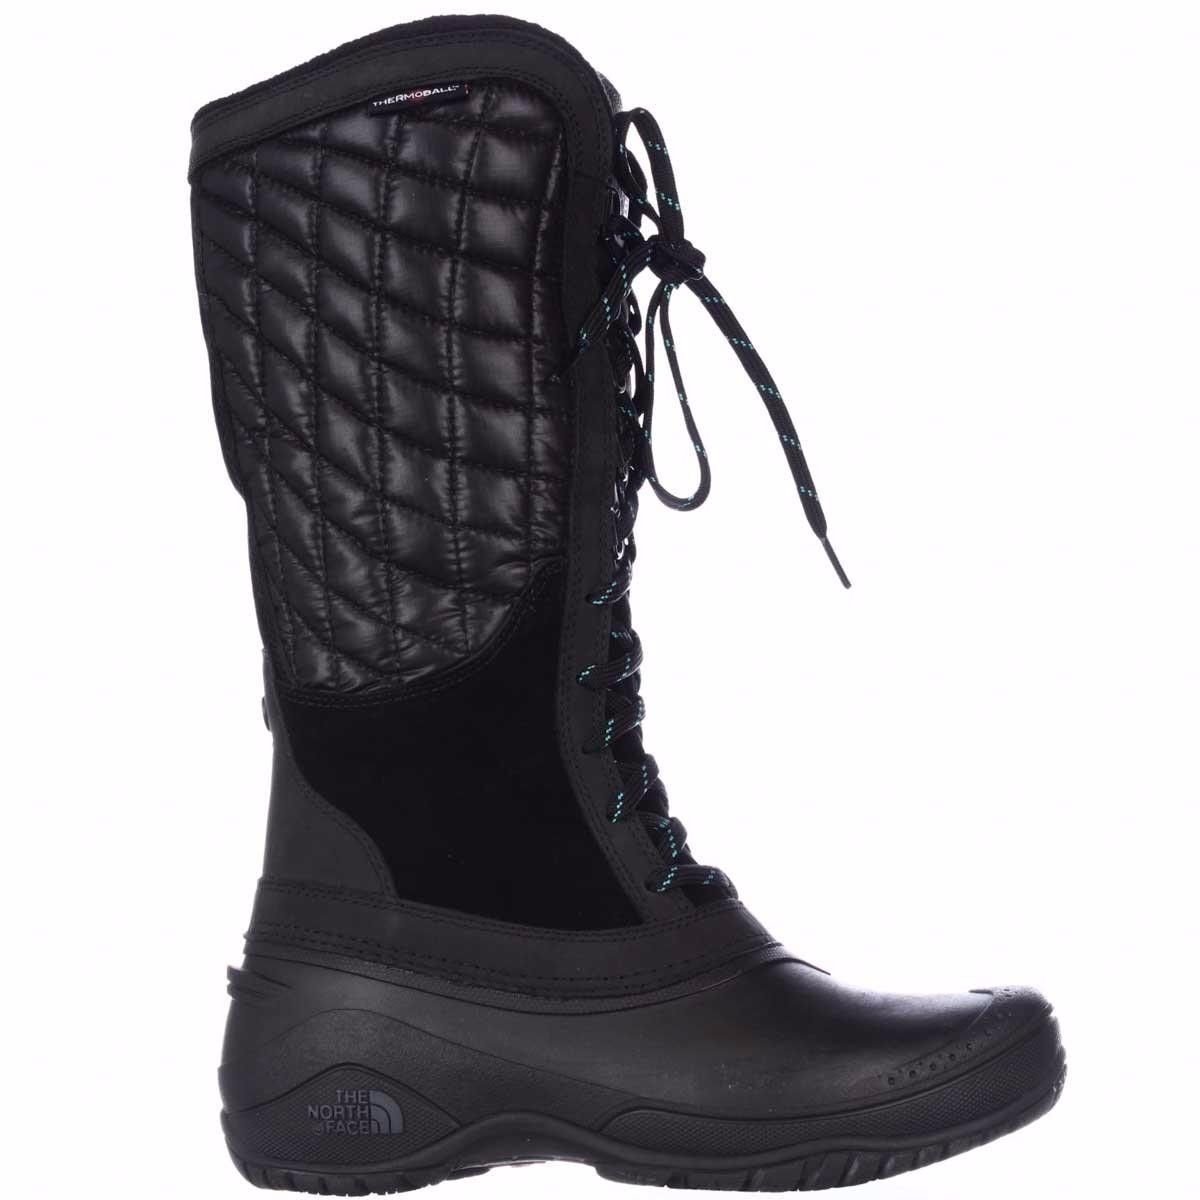 NEW  THE NORTH FACE Thermoball Utility Women's - Women's Utility boots size US 10.5 SAVE c2cc0b